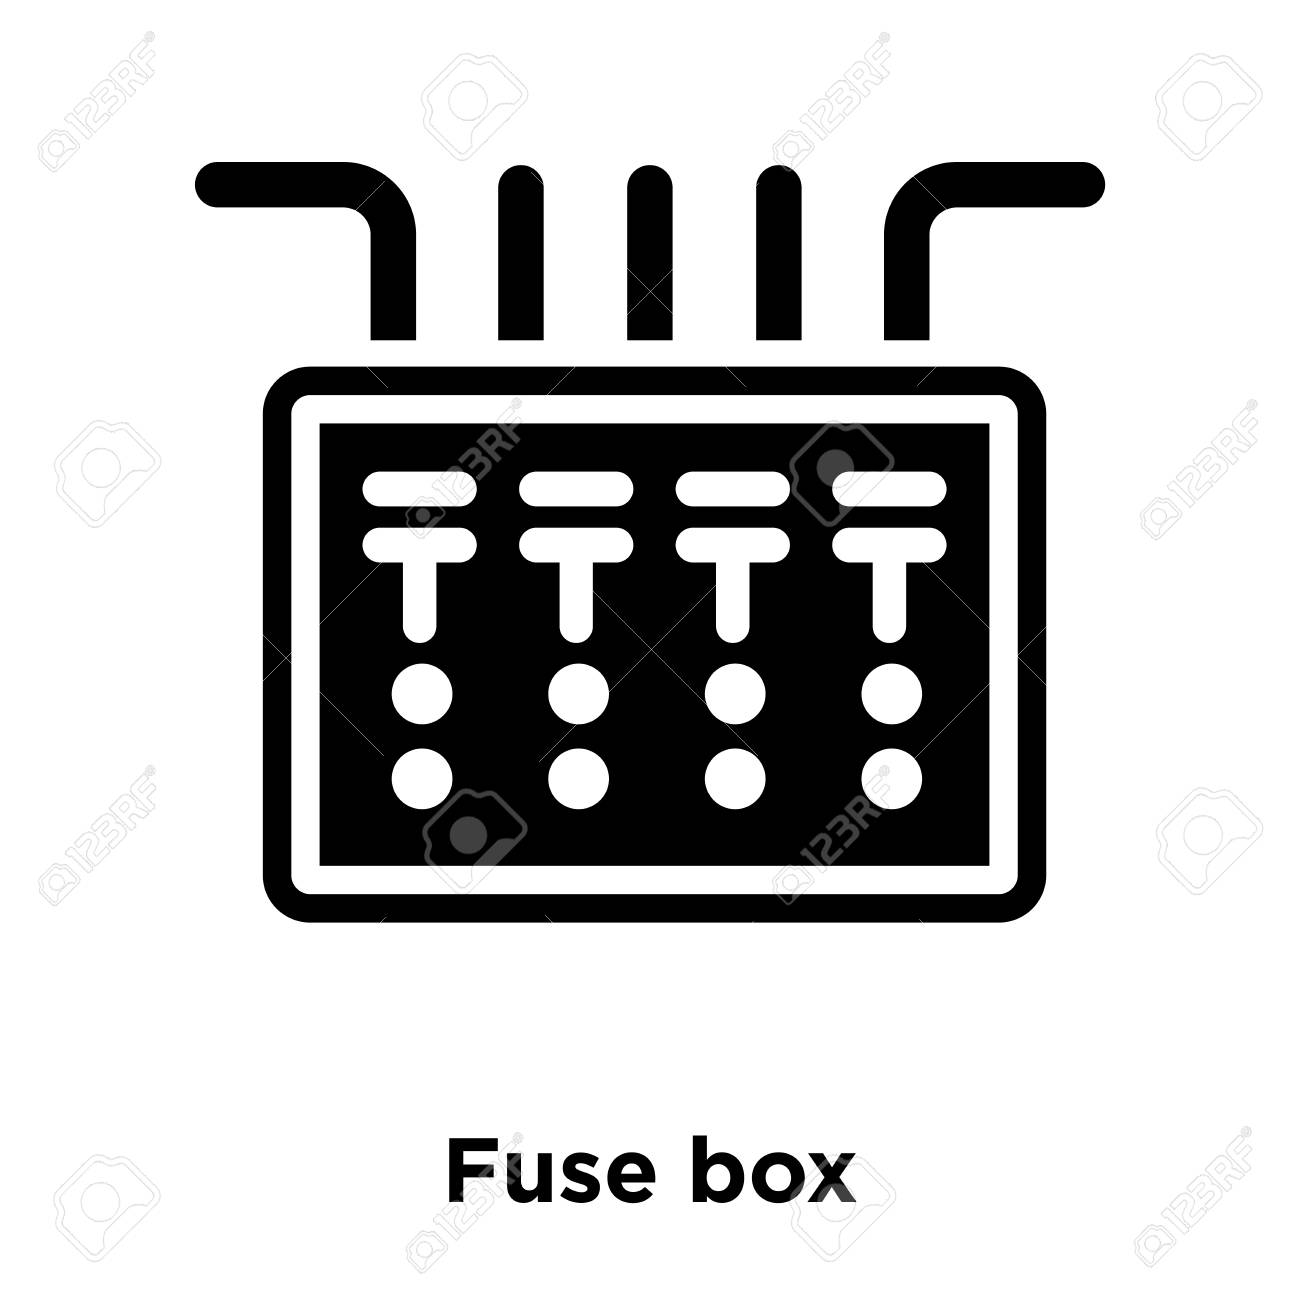 hight resolution of office fuse box wiring diagram centre fuse box icon vector isolated on white background logo